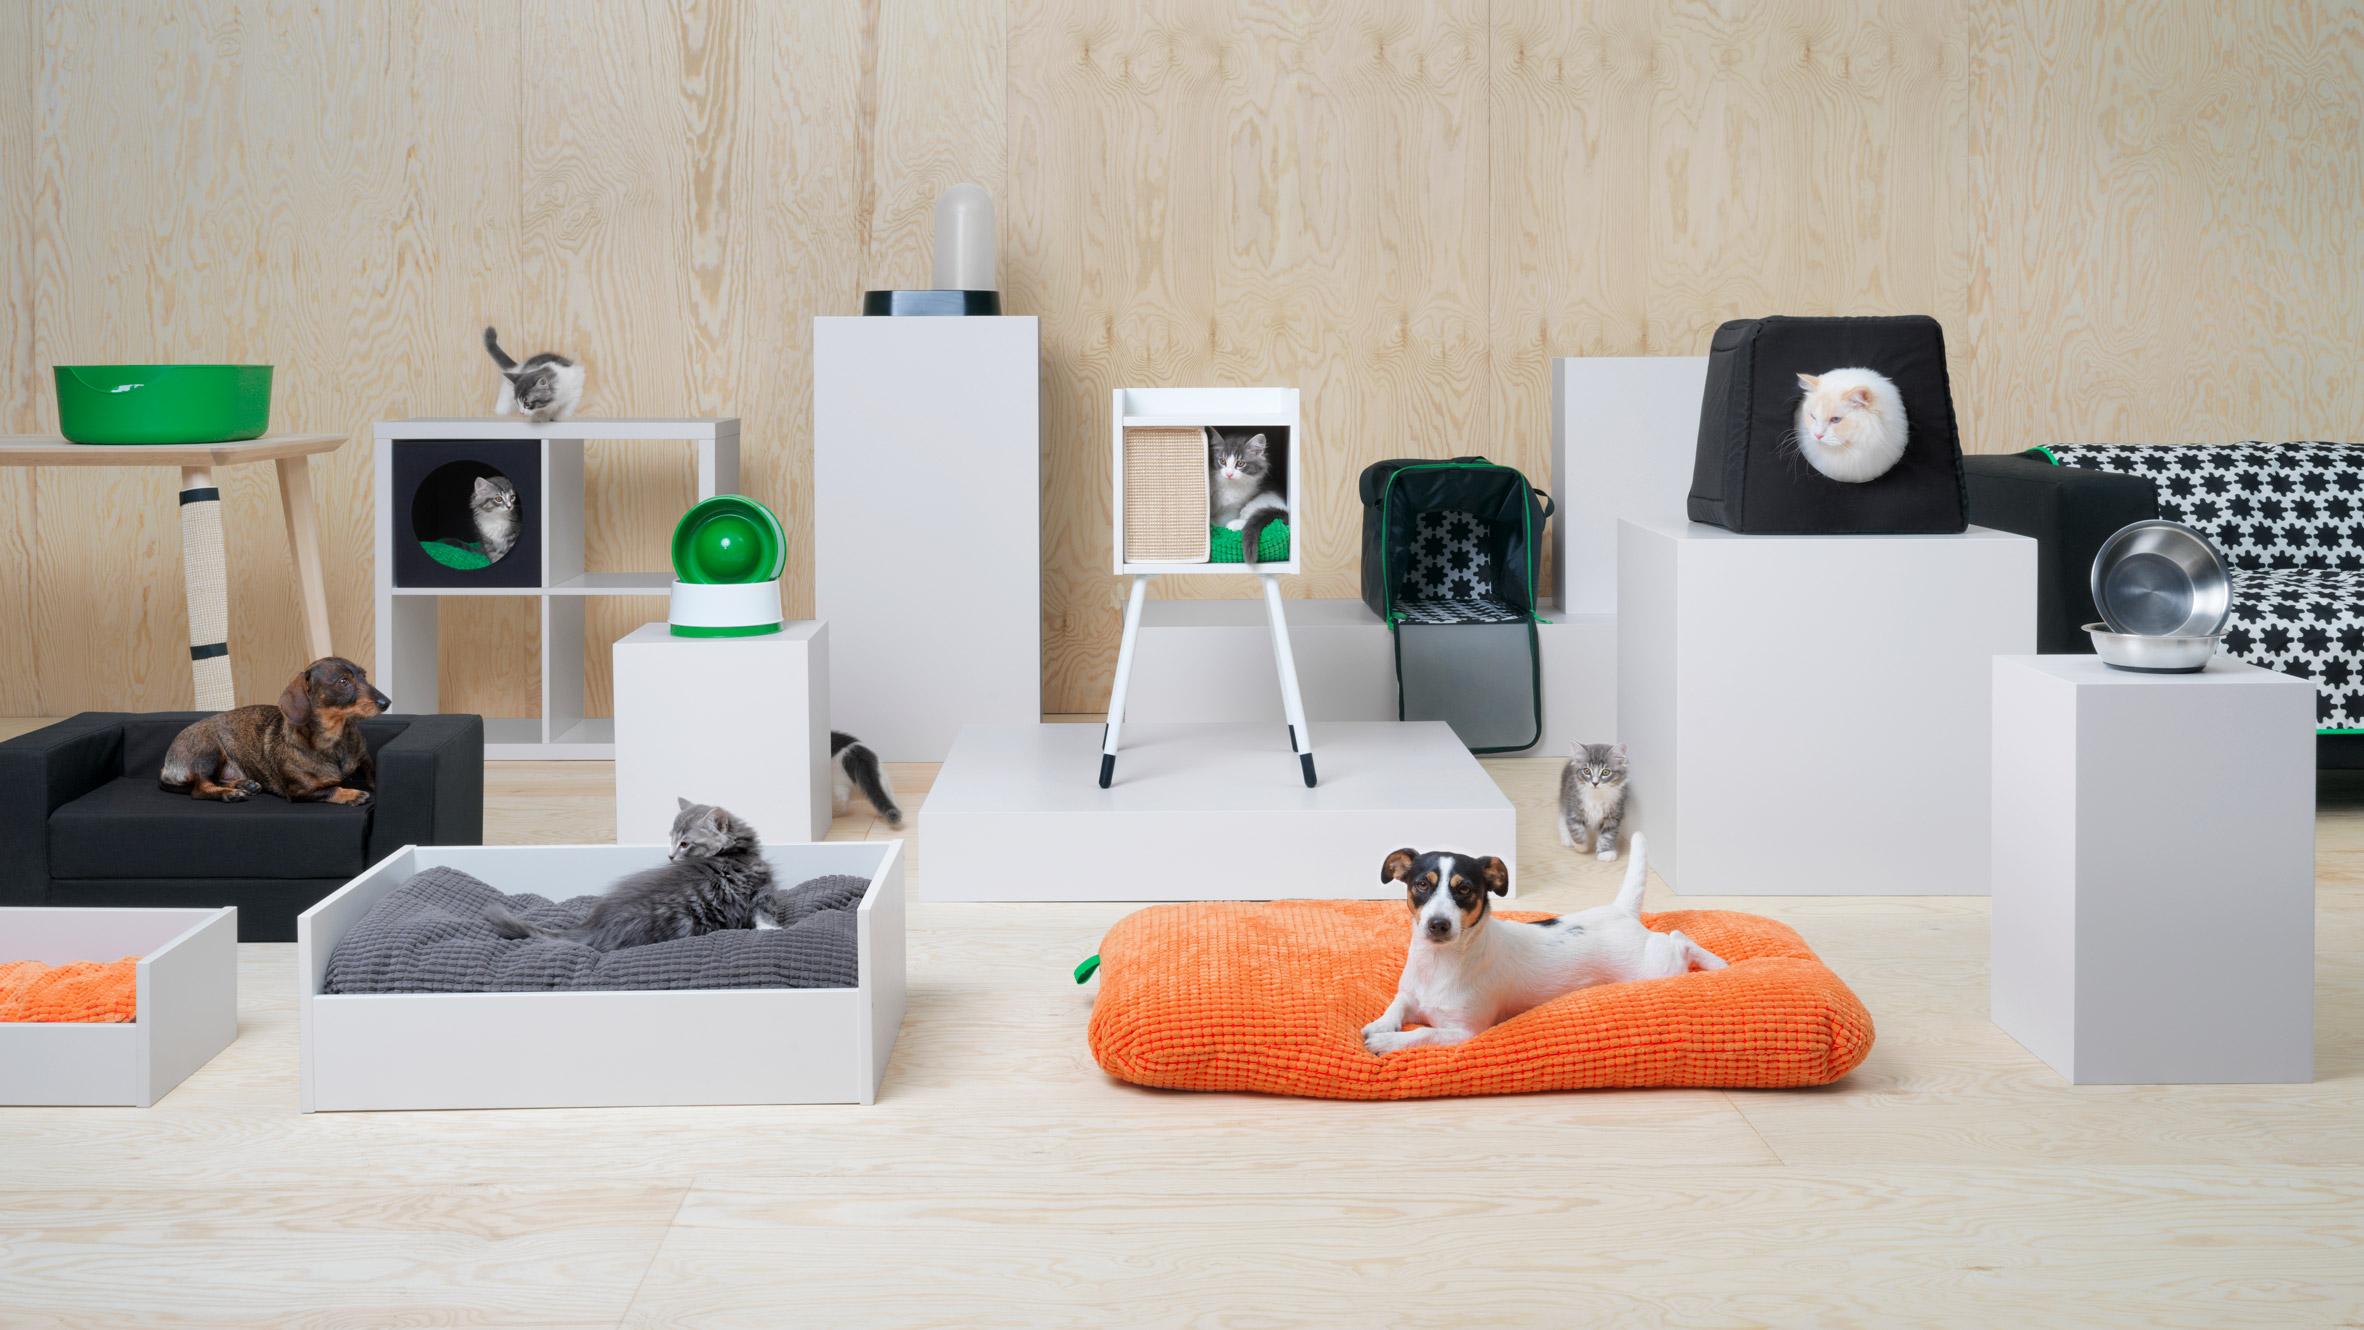 This week, the RIBA Stirling Prize shortlist was announced and IKEA recalled a pet product